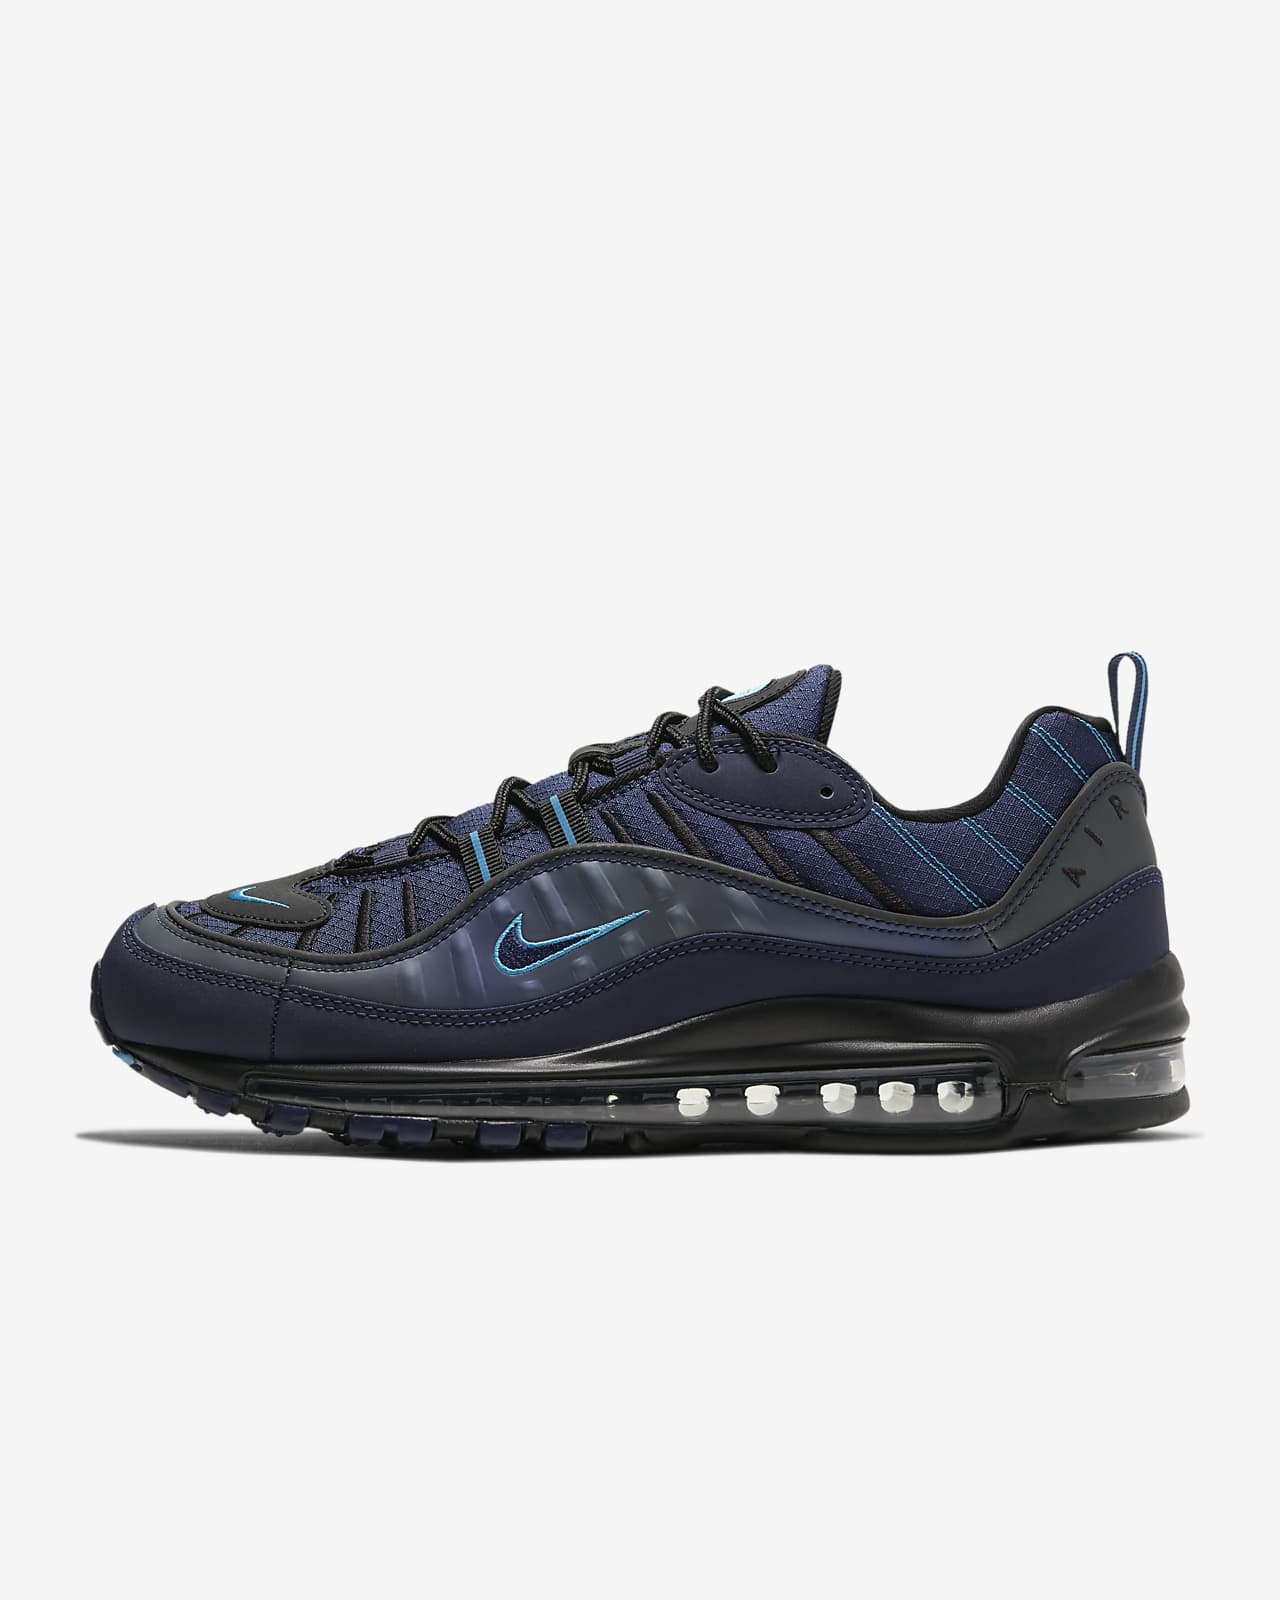 Nike Air Max 98 SE Men's Shoe